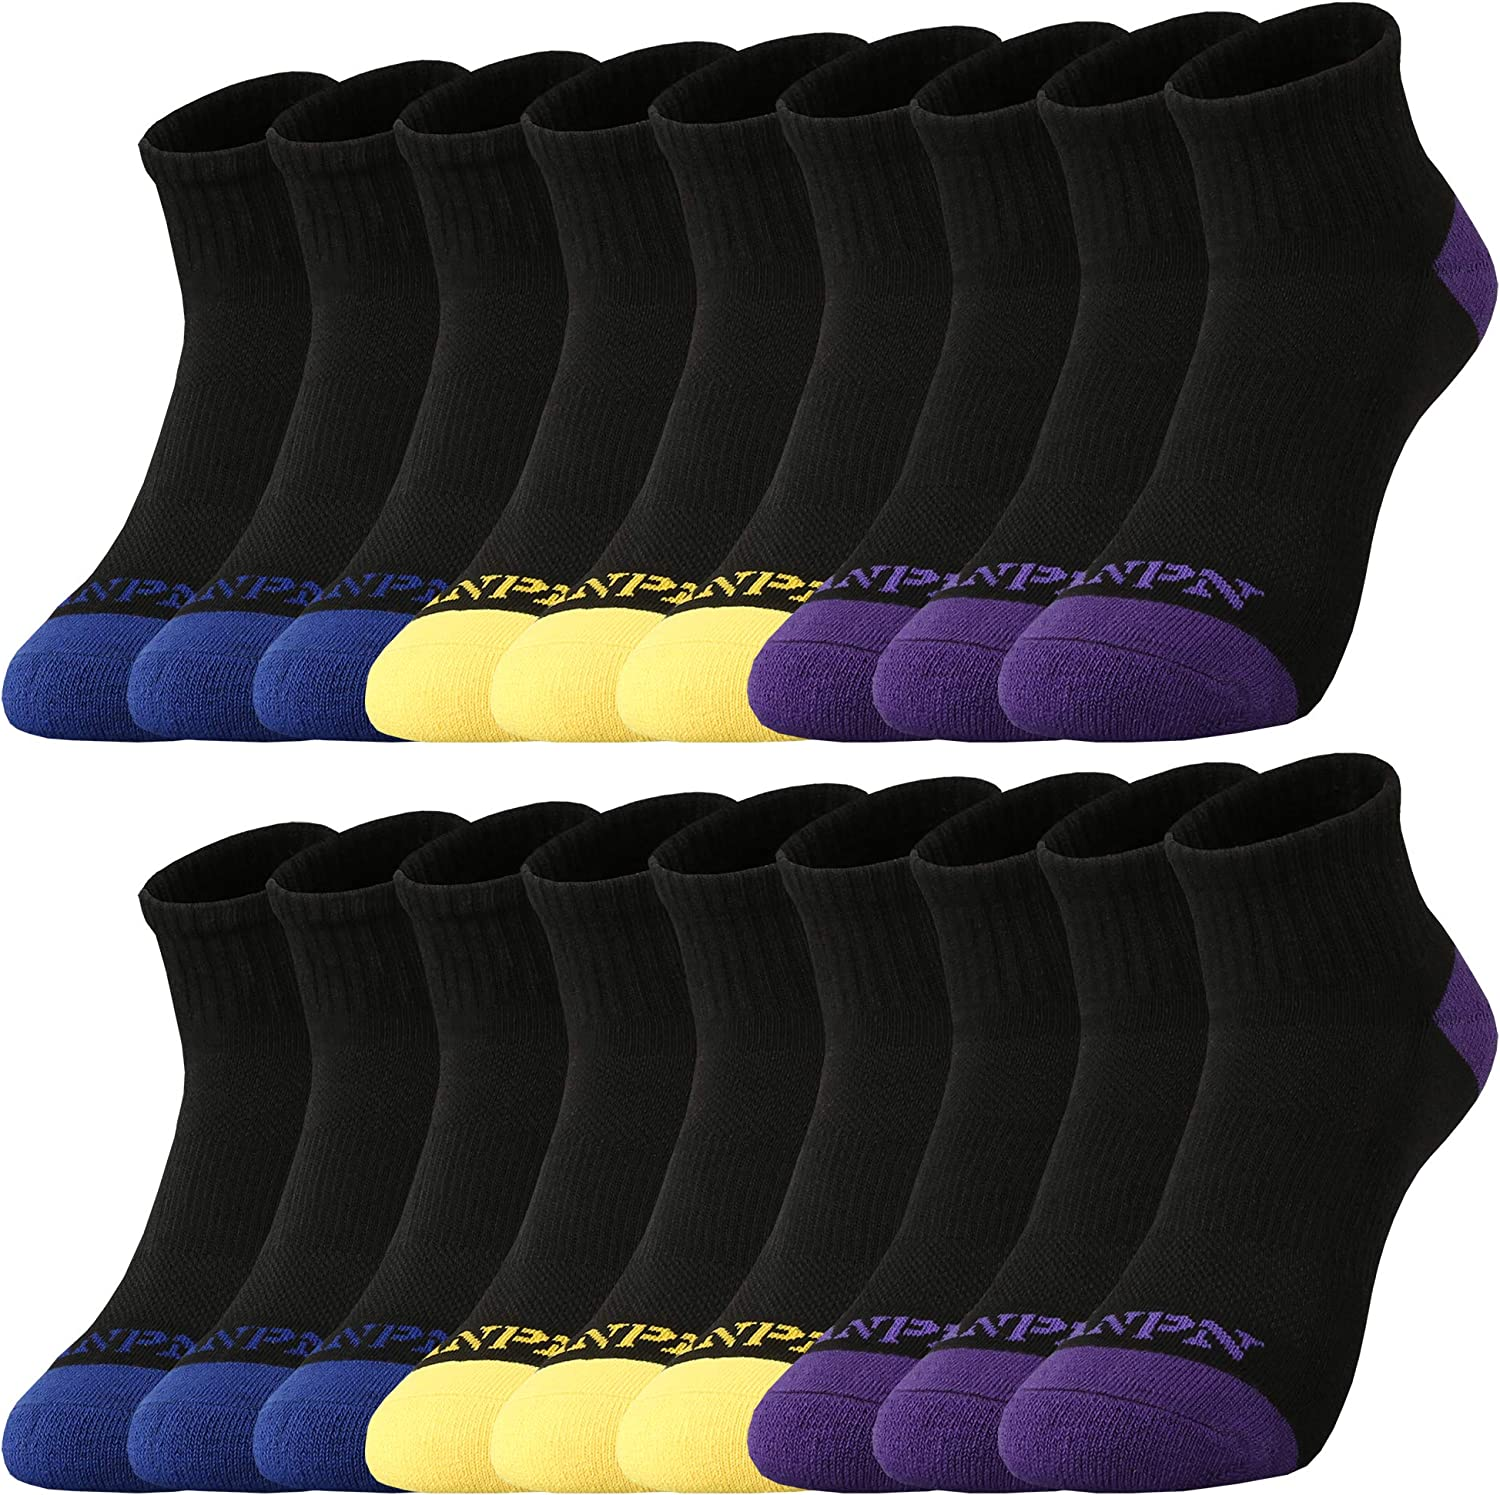 ANPN Low Cut Socks 18 Pairs Unisex Cushioned Non Slip Casual Athletic for Toddler Boy Kids 2-4 4-6 5-7 6-8 Yeas